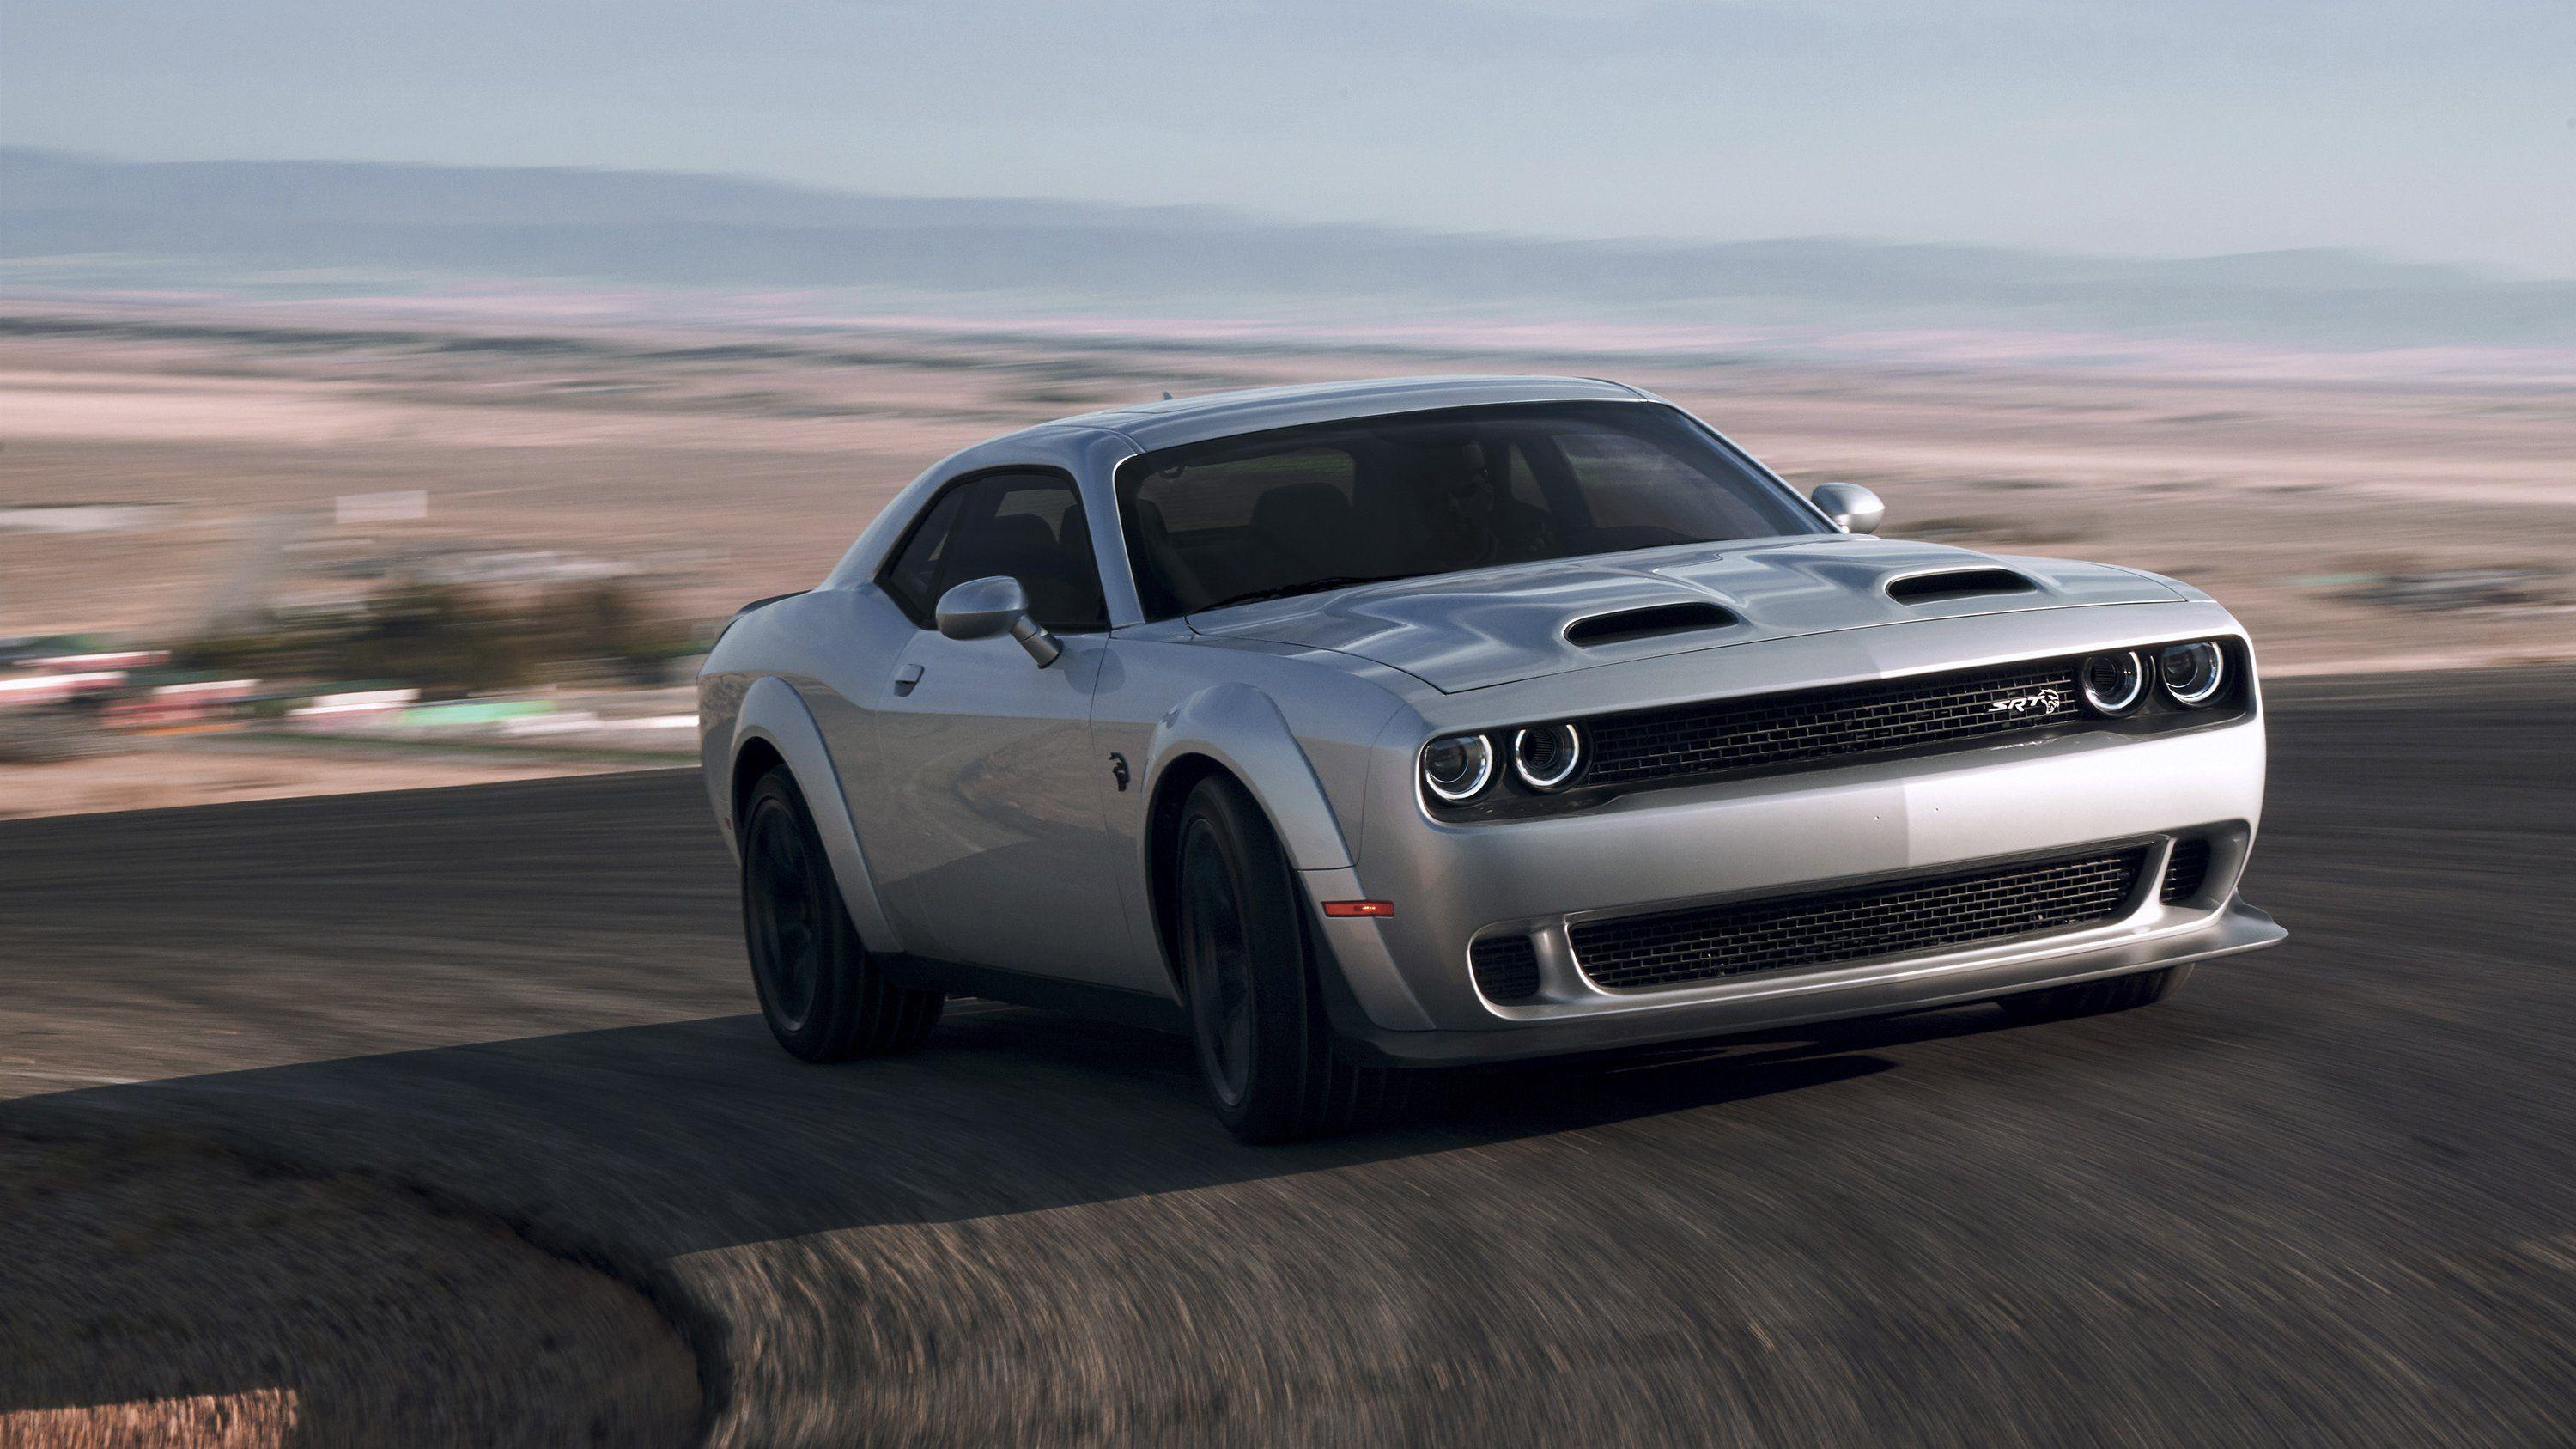 Wallpapers Of The Day: 2019 Dodge Challenger SRT Hellcat Redeye